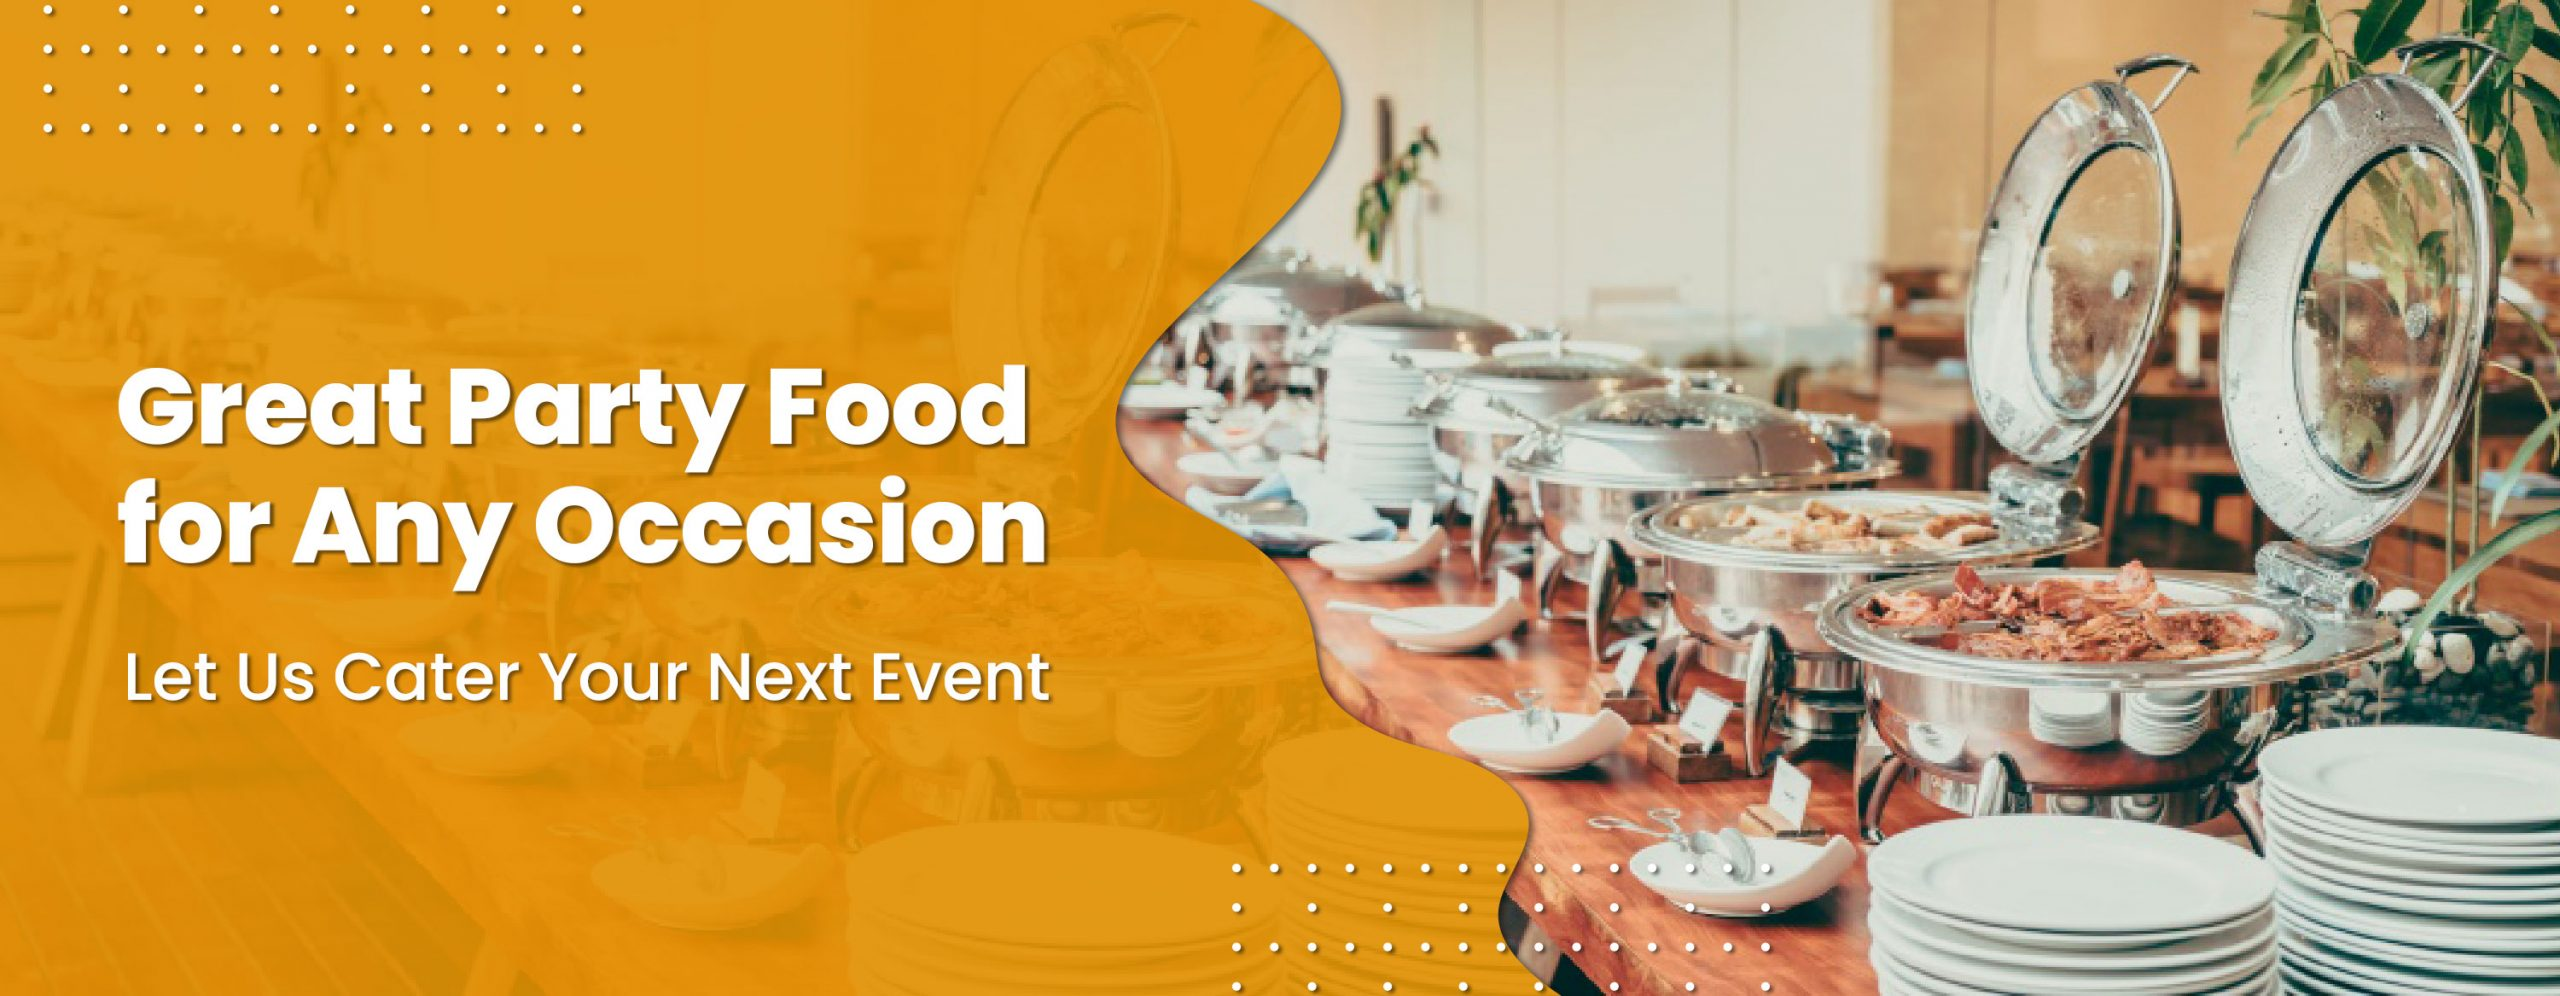 Shiraaz-Indian Food Catering Services Melbourne